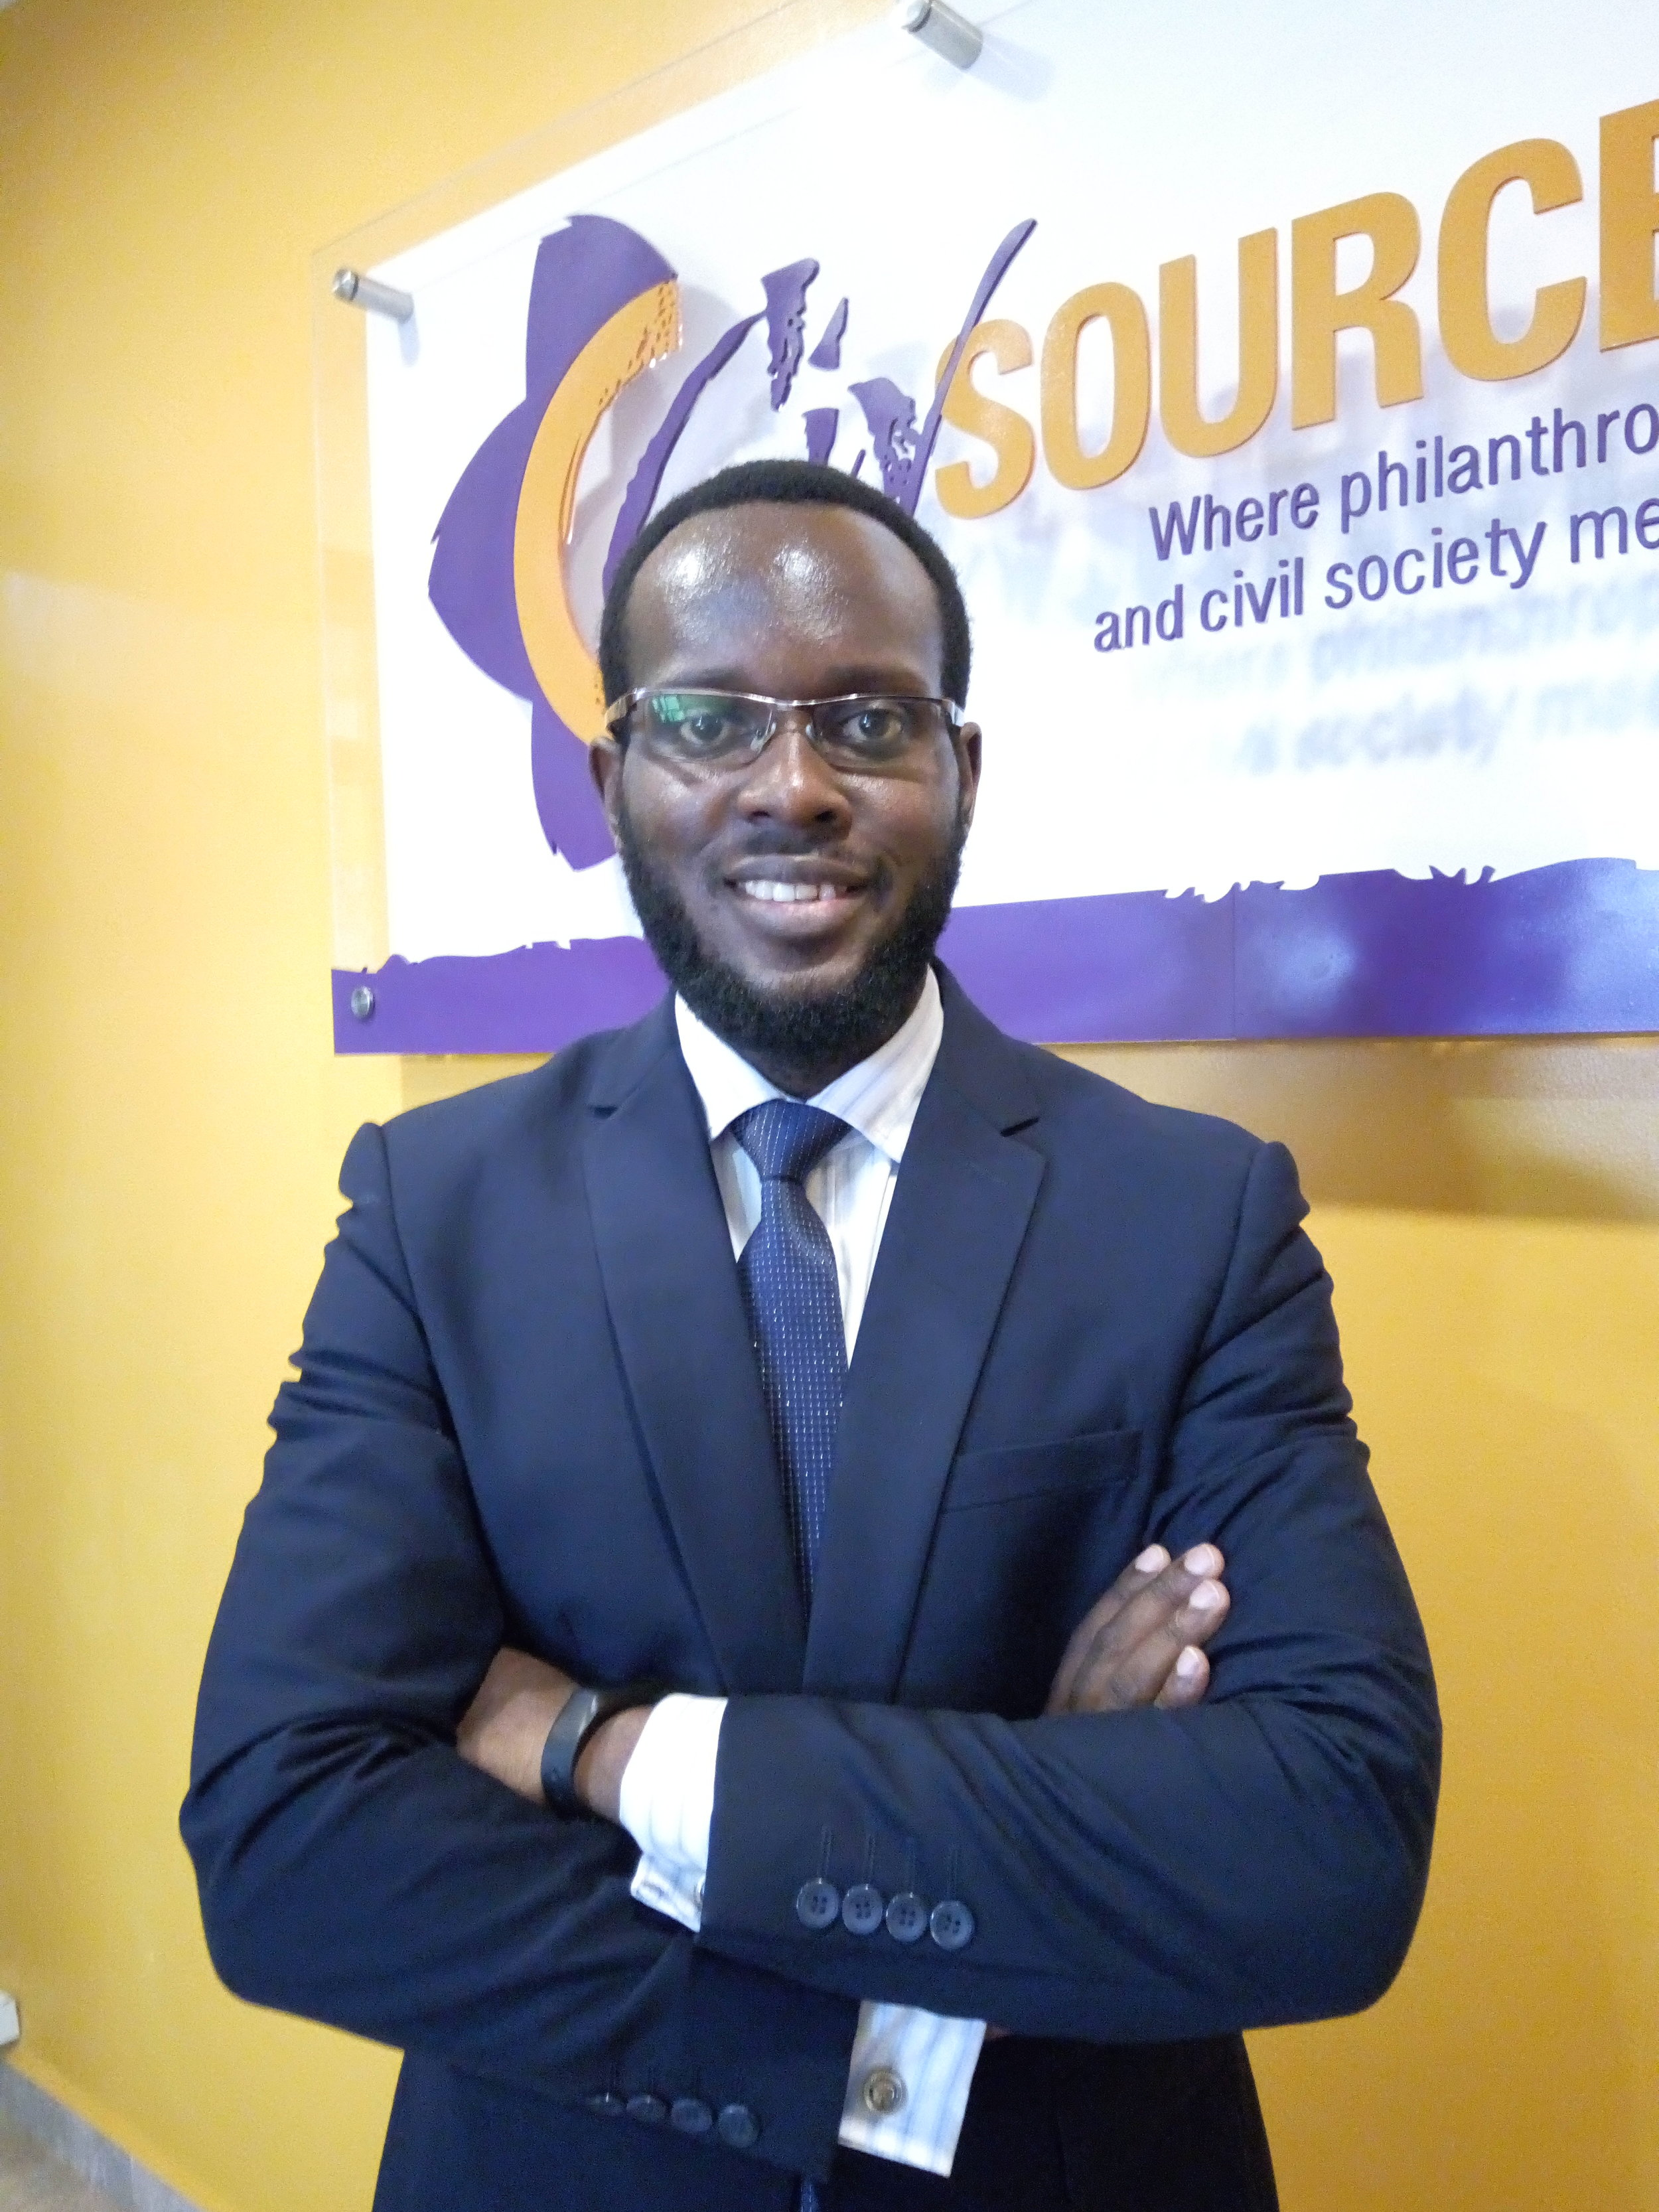 Malcolm Twino Mpamizo - Associate, CivAdvisoryMalcolm is a Ugandan and Ireland trained lawyer with over 10 years' experience in development law and practice. He has vast knowledge in legal, governance and human rights policy, research and advocacy and grants management. At CivSource Africa, Malcolm is responsible for the development and implementation of interventions that strengthen civil society and philanthropy in Uganda. Previously, he was Senior Manager for Program Quality at Restless Development Uganda; Governance, Strategy and Organization Development Specialist at Forum for African Women Educationalists (FAWE) Tanzania, and Legal and Program Officer at FAWE Uganda. Malcolm has a Bachelor of Laws from Makerere University, a Postgraduate Diploma in Legal Practice from The Law Development Center and a Master of Laws in International Human Rights Law and Public Policy from University College Cork, Ireland. Malcolm is a certified corporate governance professional with the Institute of Chartered Secretaries and Administrators (UK).